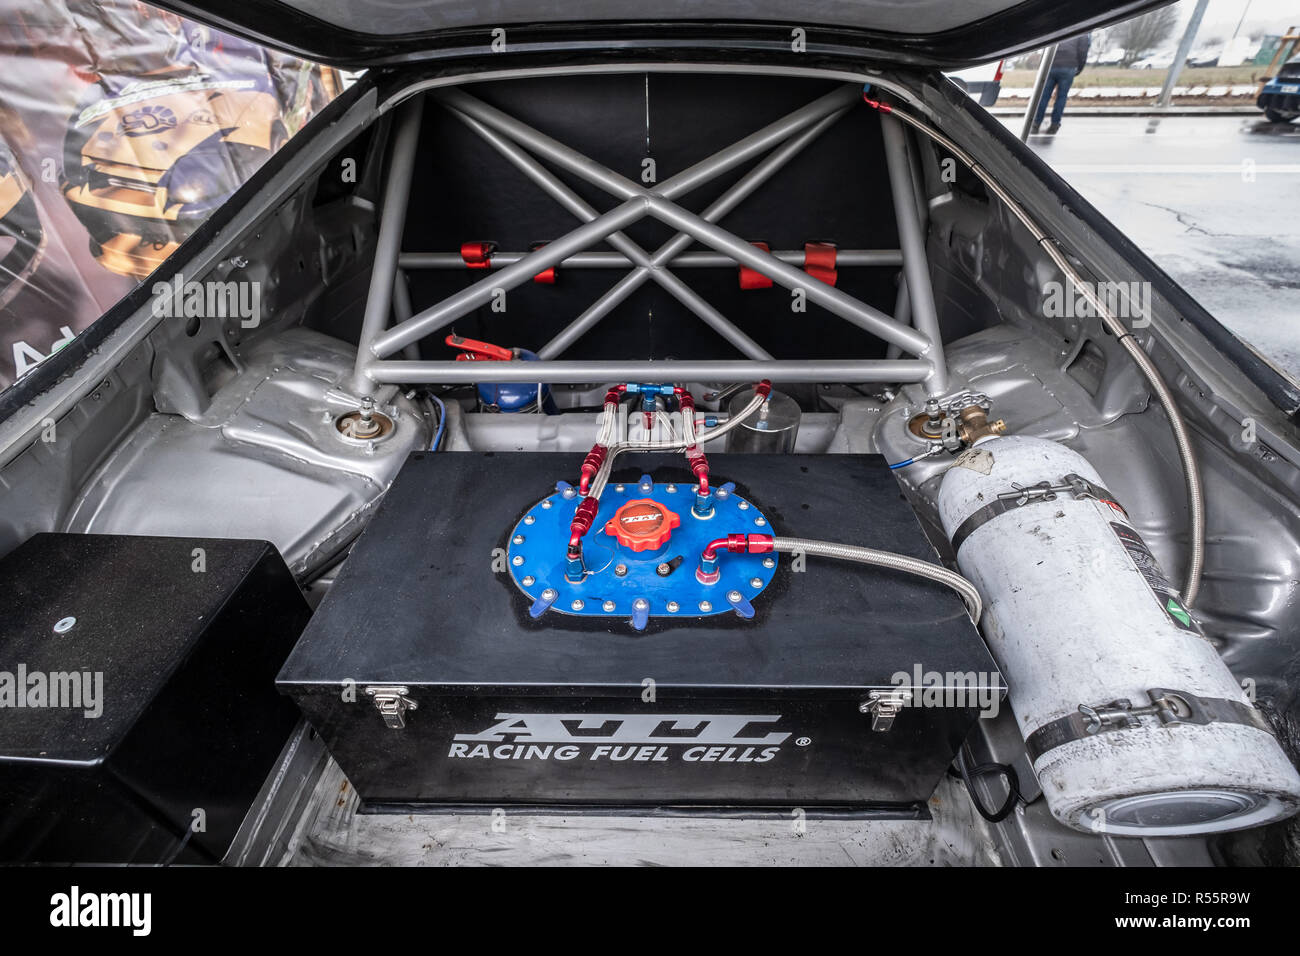 Zgierz / Poland November 24, 2018: drift car trunk with the fuel installations inside - Stock Image